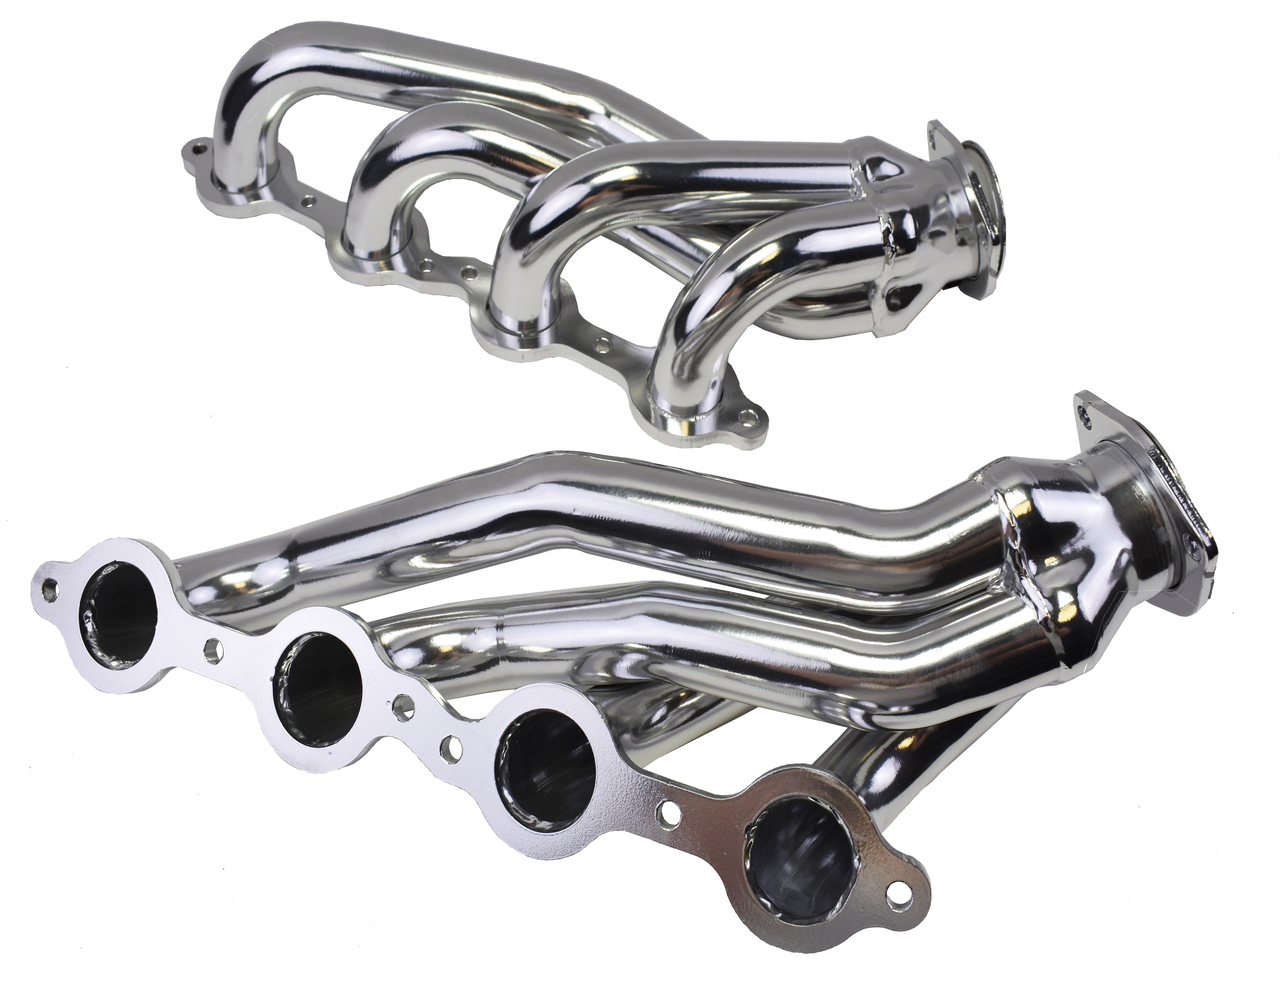 A-Team Performance LS SWAP 60's & 70's CAMARO CHEVELLE NOVA C10 MID LENGTH CERAMIC COATED HEADERS